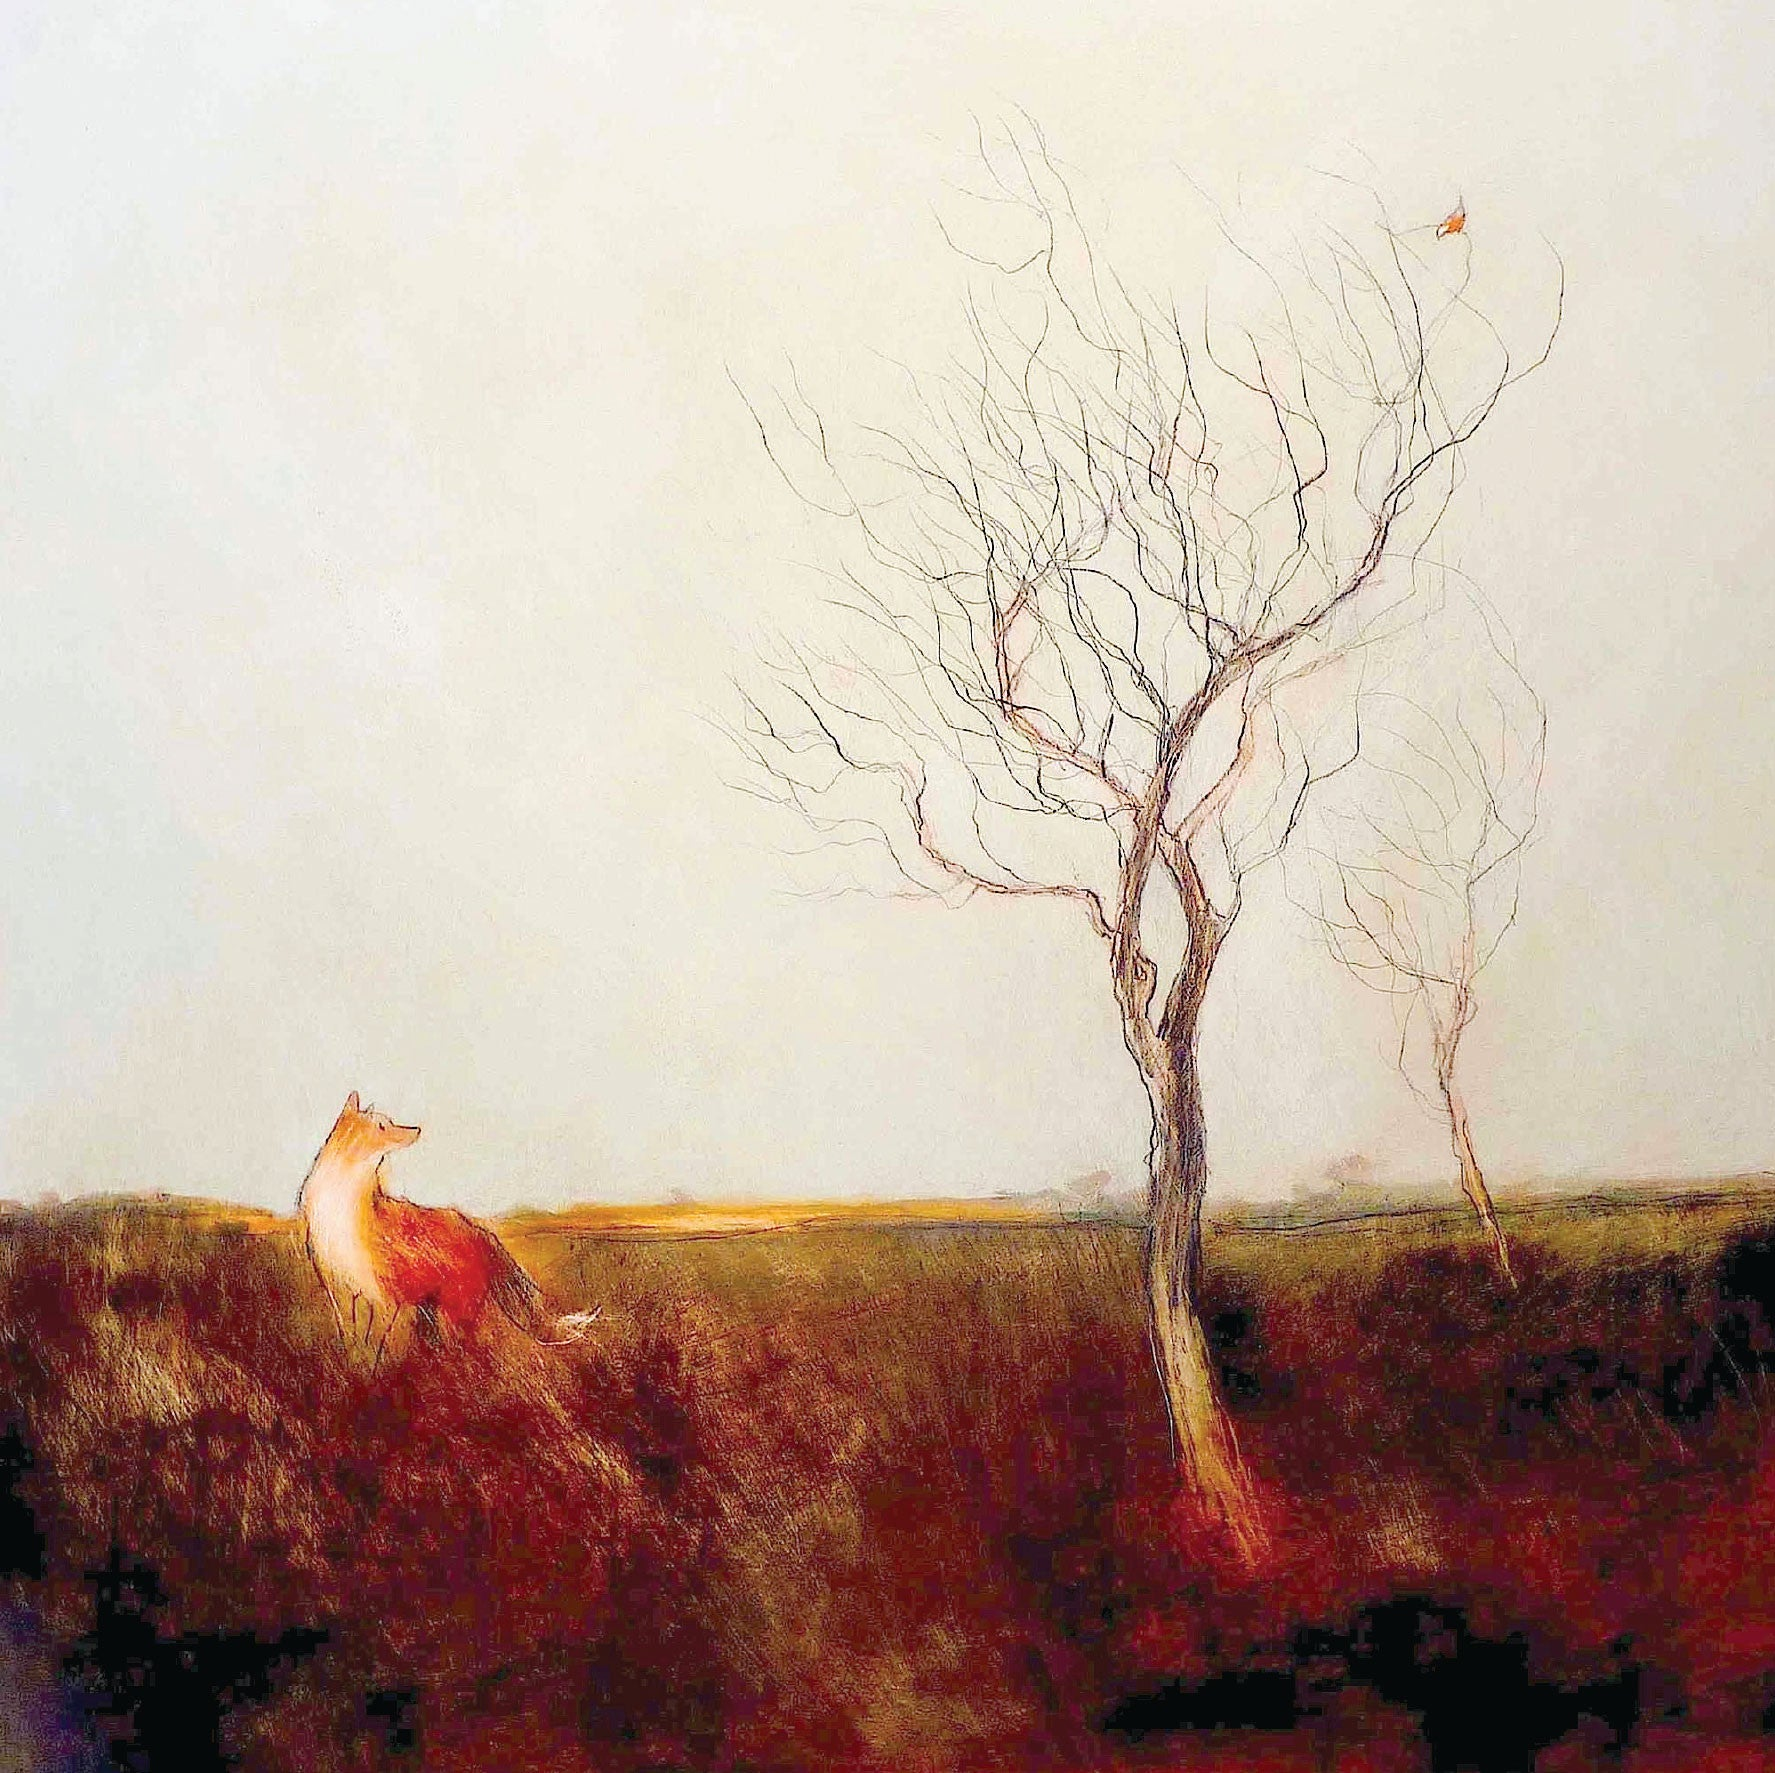 The Fox and the Redstart by Tom Homewood, Fine Art Greeting Card, Oil on Panel, A fox watching a bird in a tree